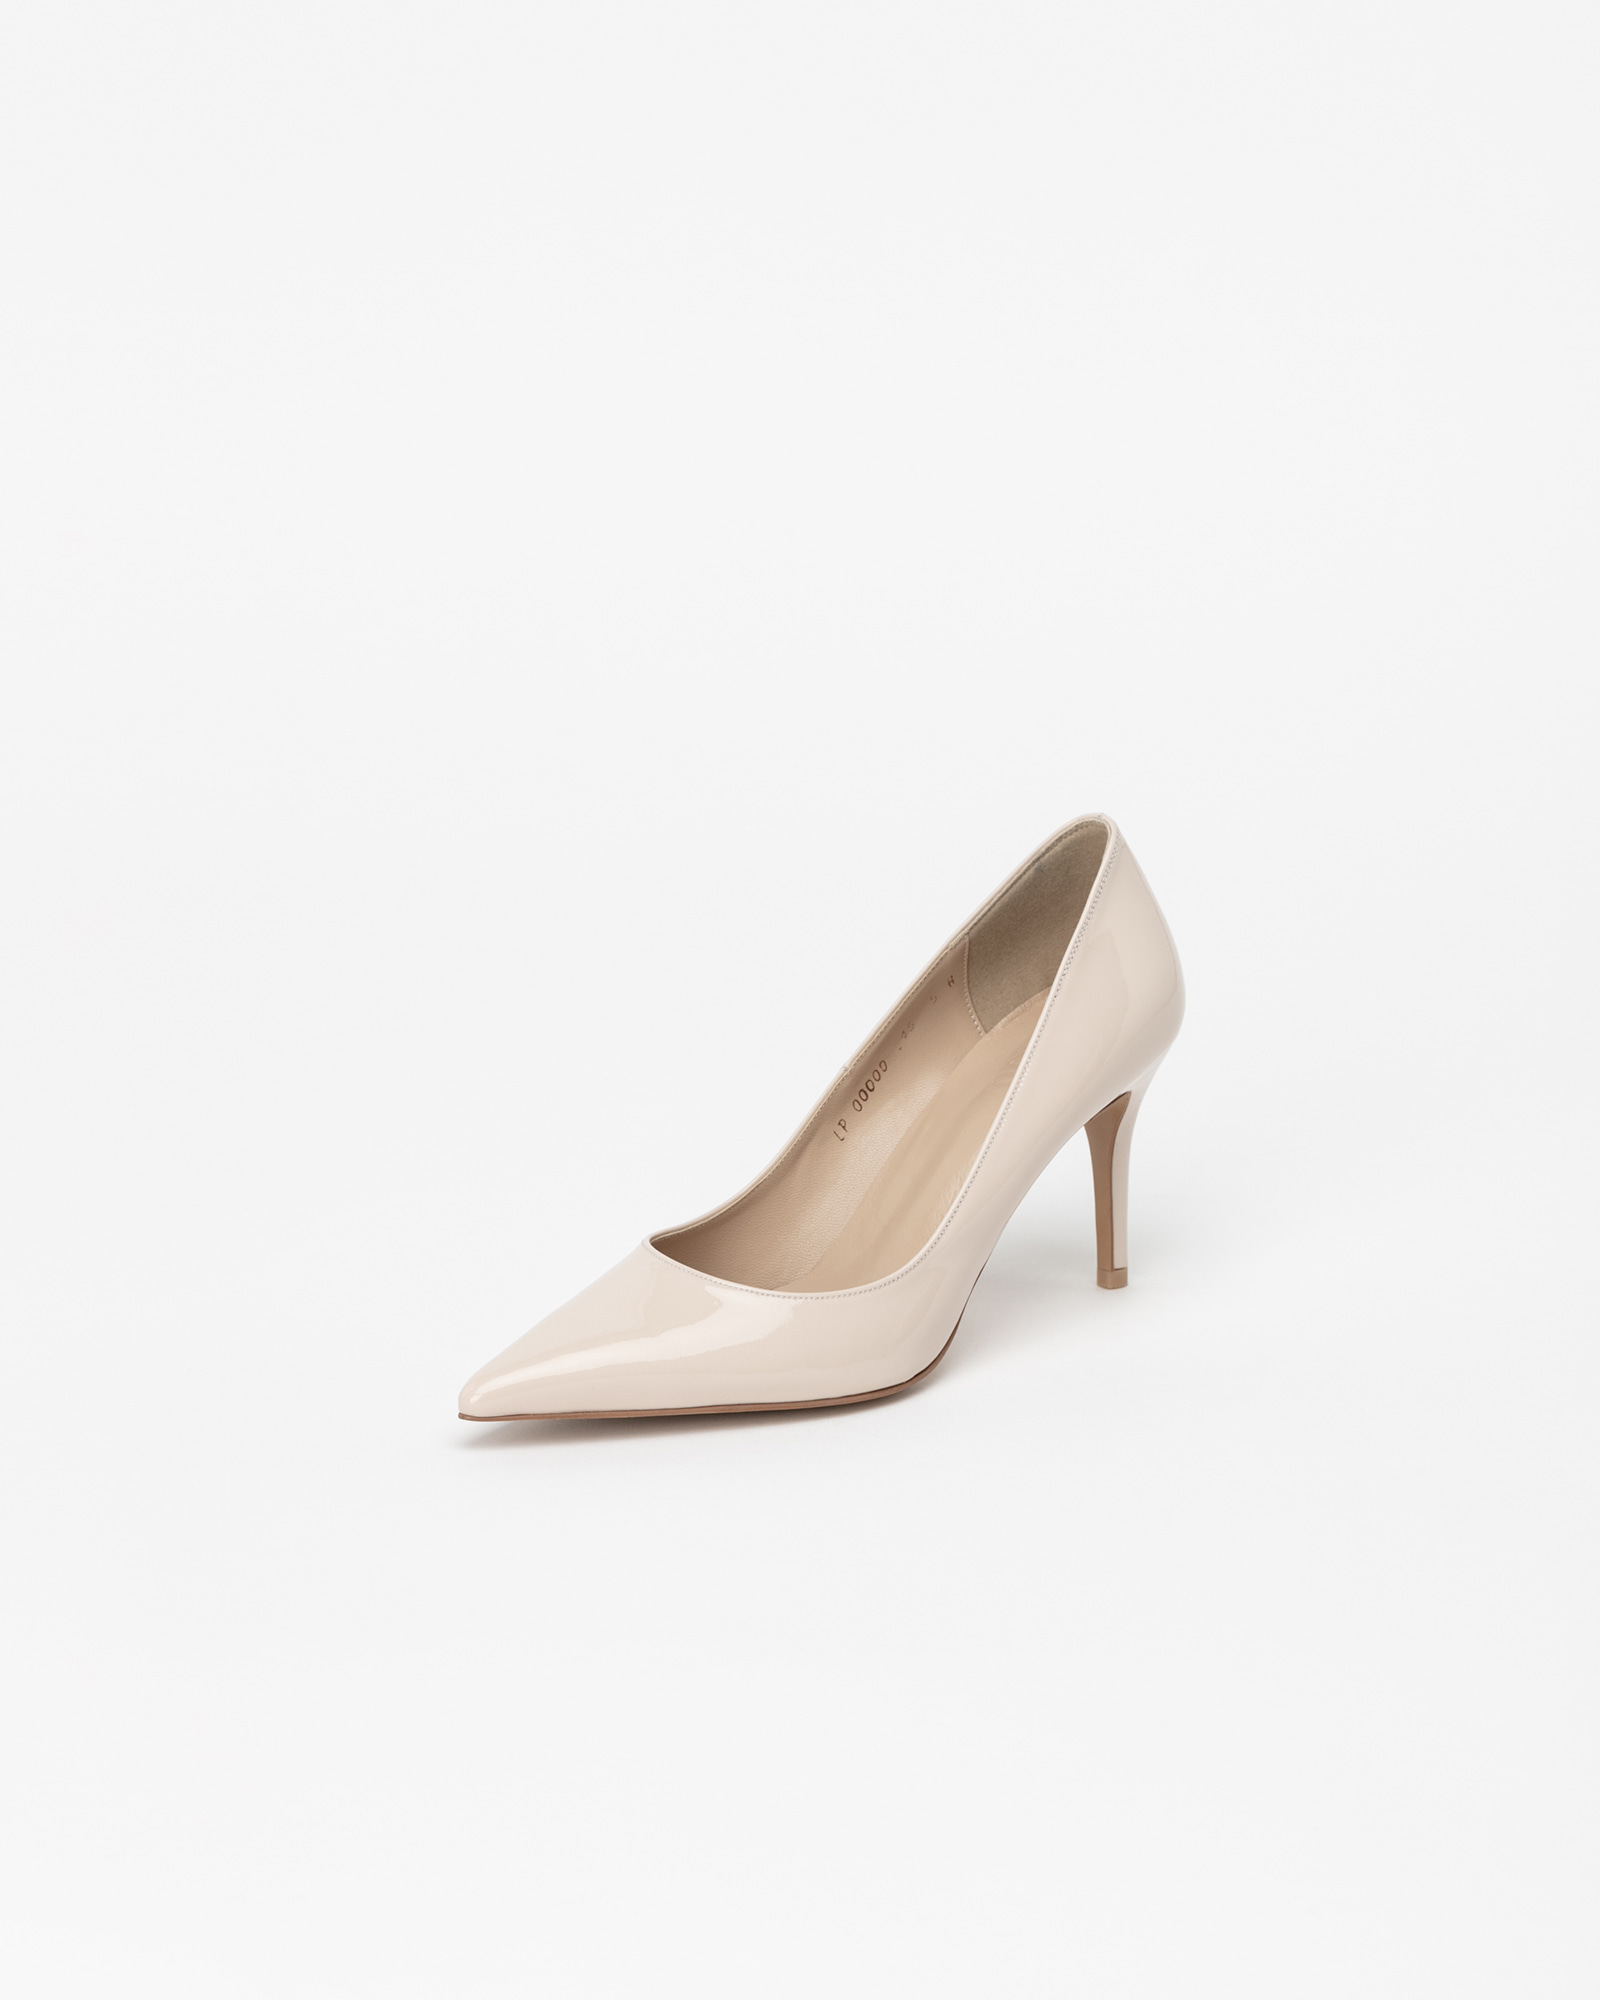 Chauffeur Stilletto Pumps in Pinkish Ivory Patent